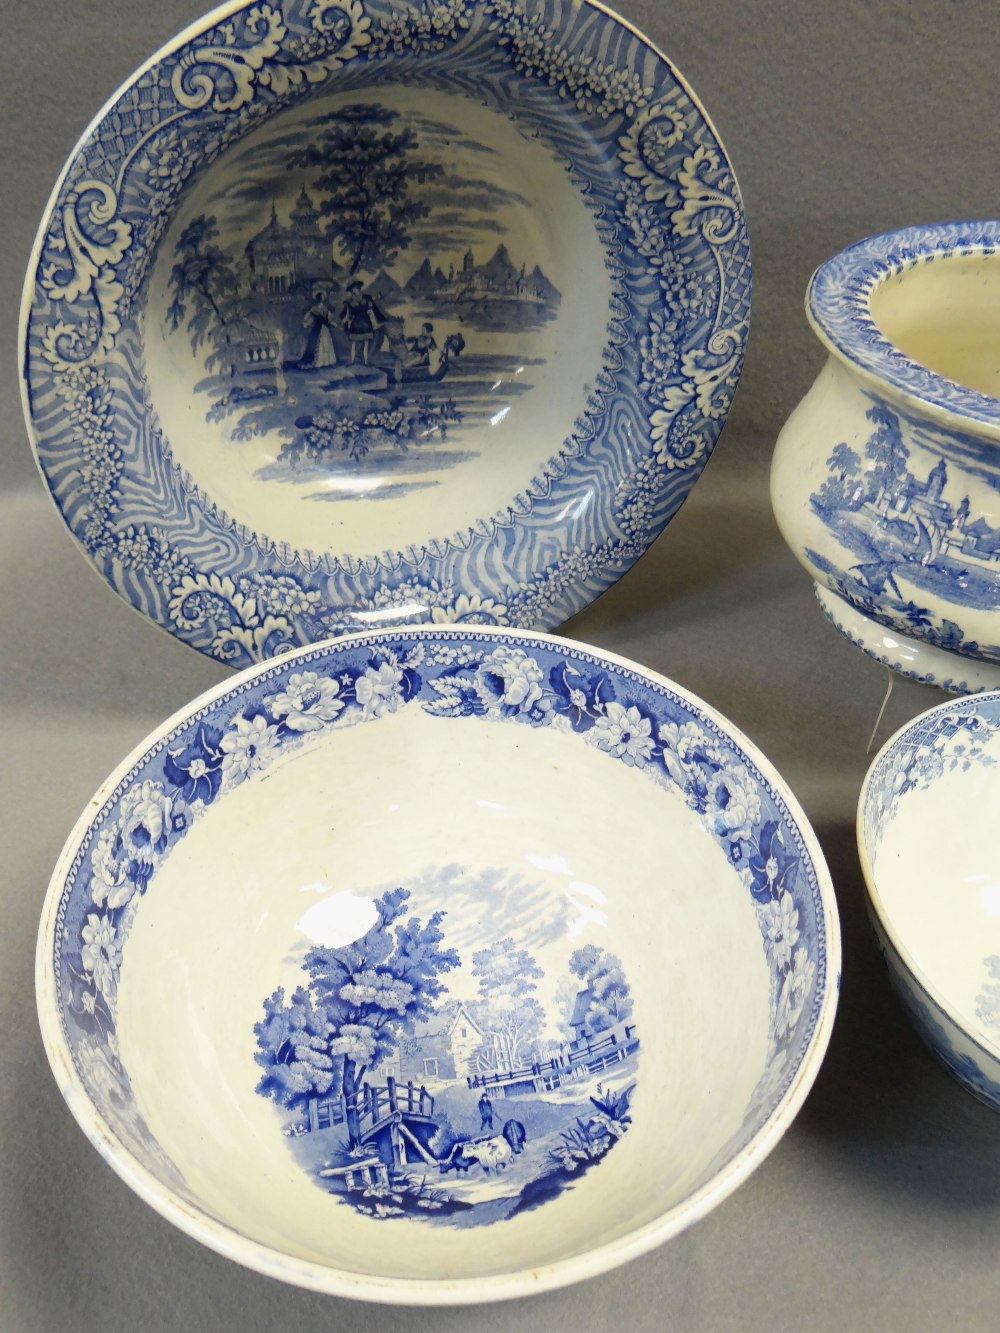 FOUR ITEMS OF WELSH BLUE & WHITE TRANSFER POTTERY including chamber-pot, 'Cows Crossing Stream' - Image 3 of 4